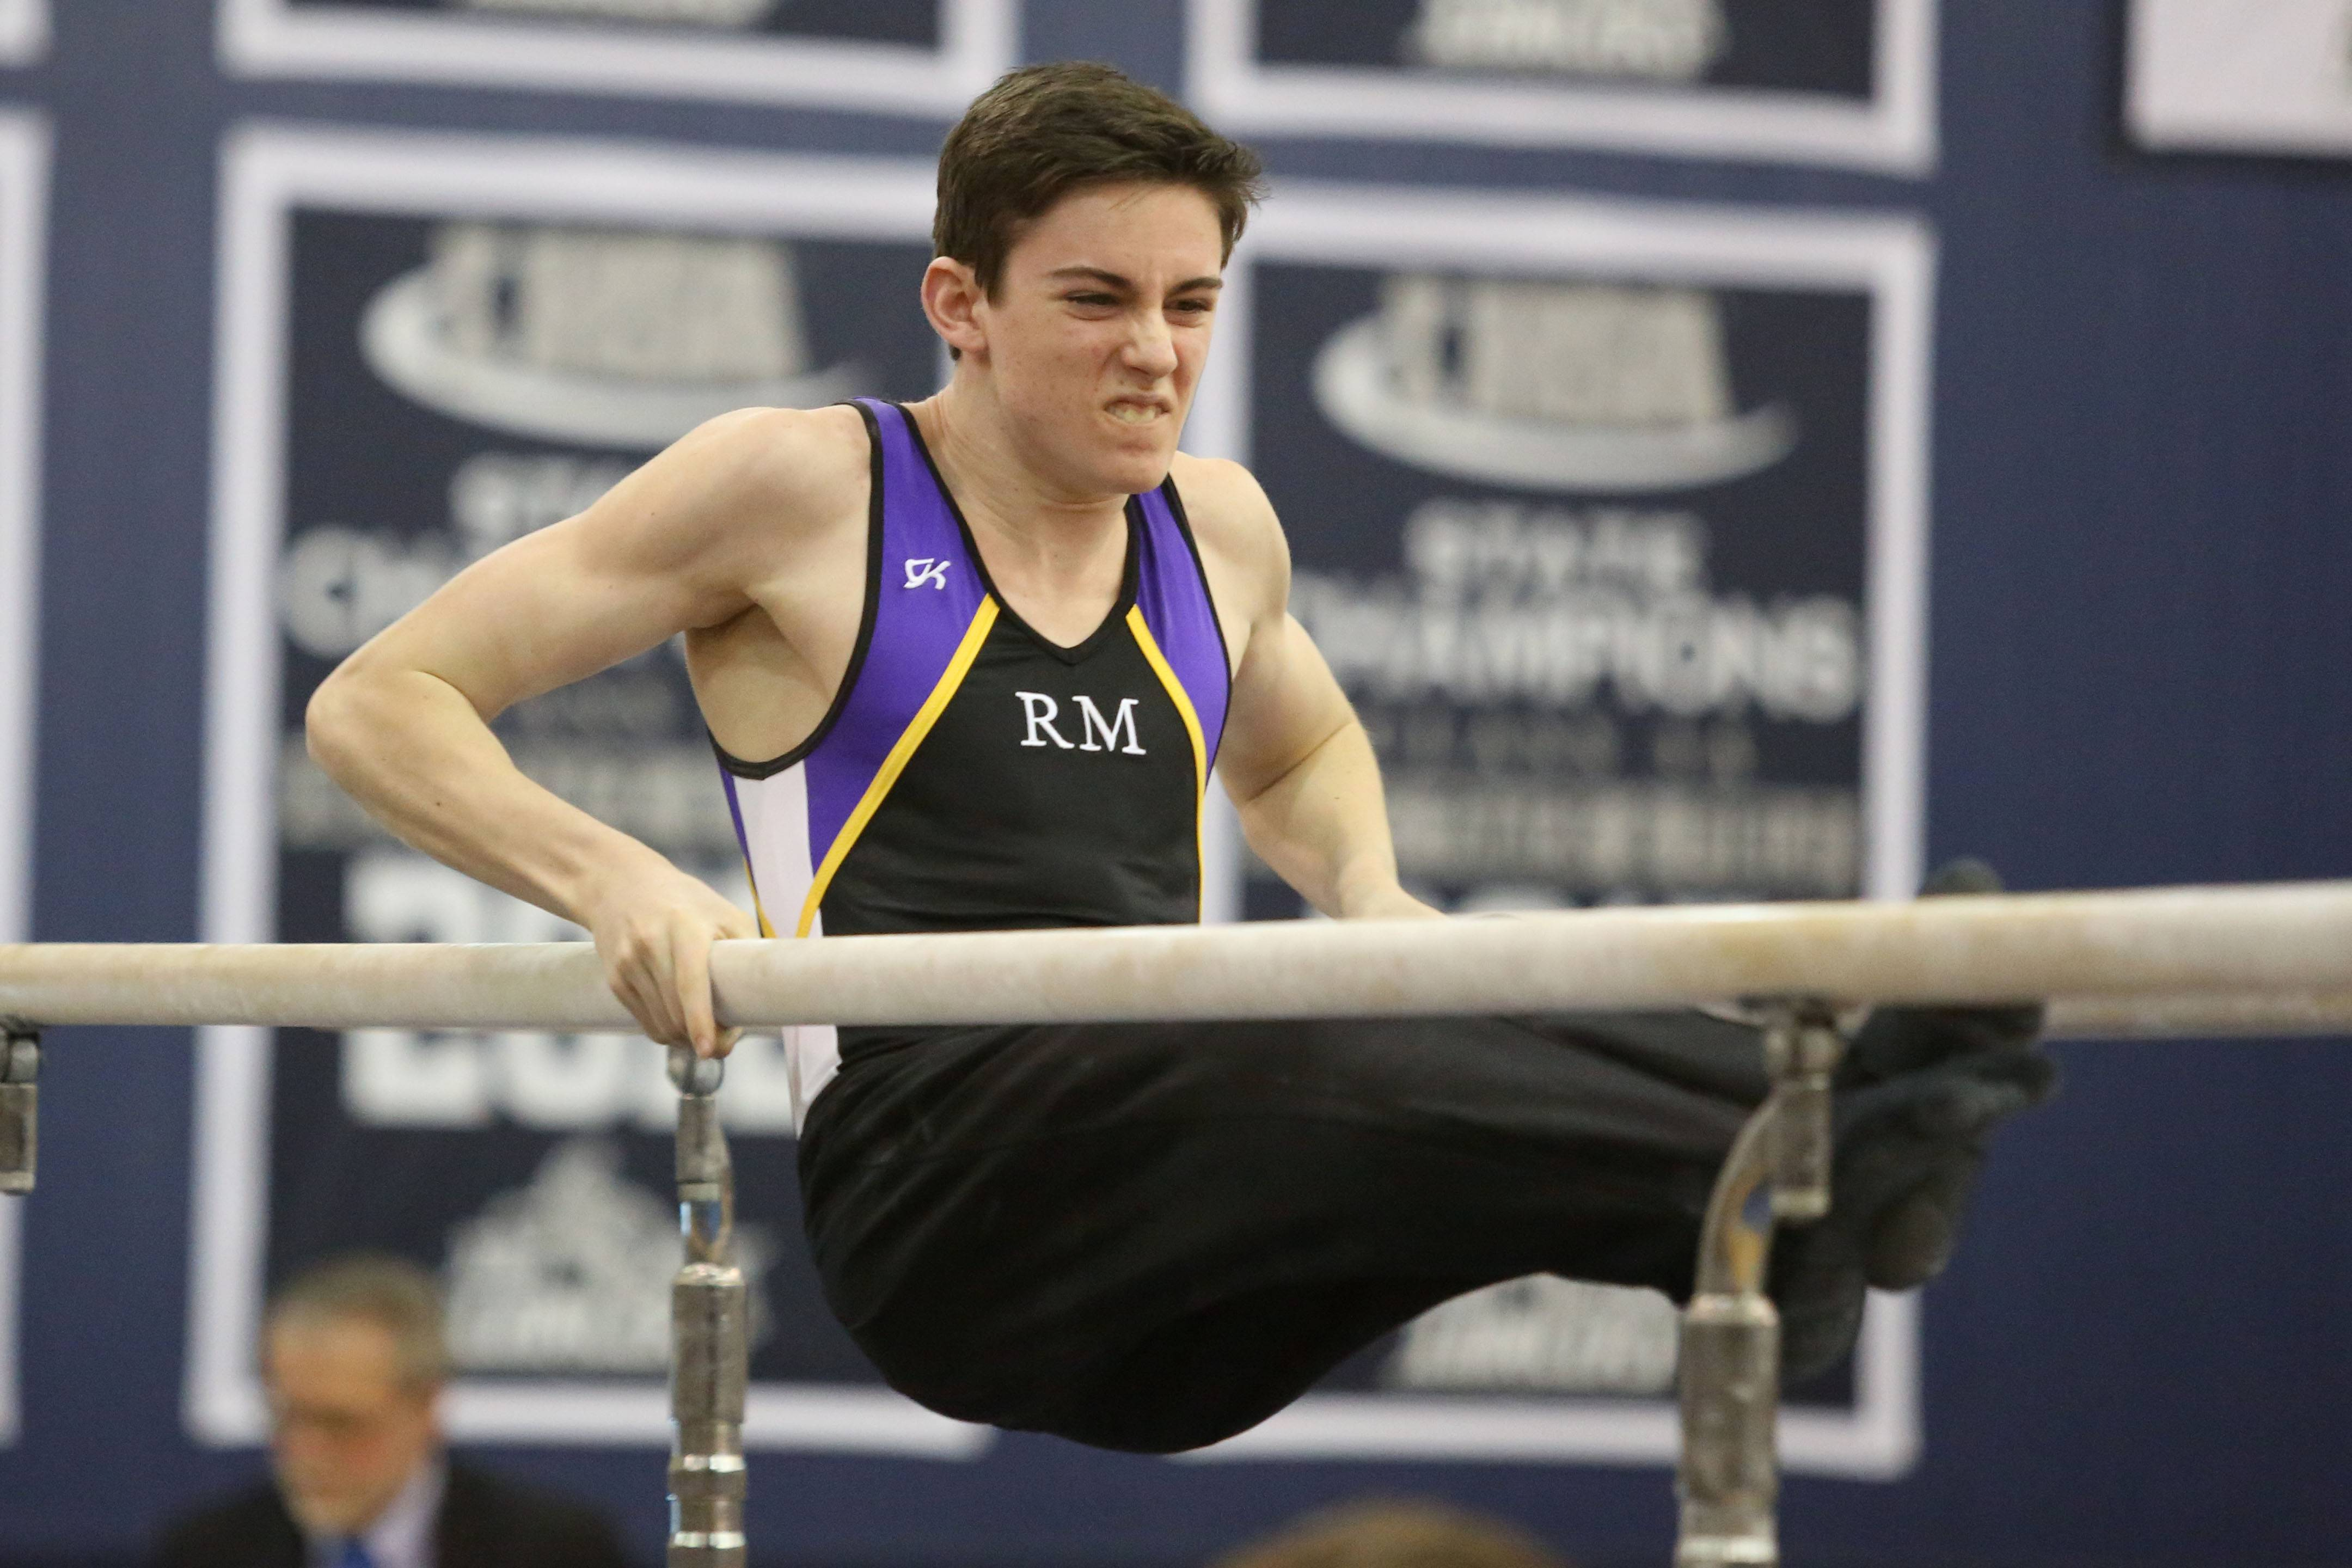 Rolling Meadows' Conor Thomas performs his parallel bar routine during the Ralph Krupke Invitational at Lake Park High School.